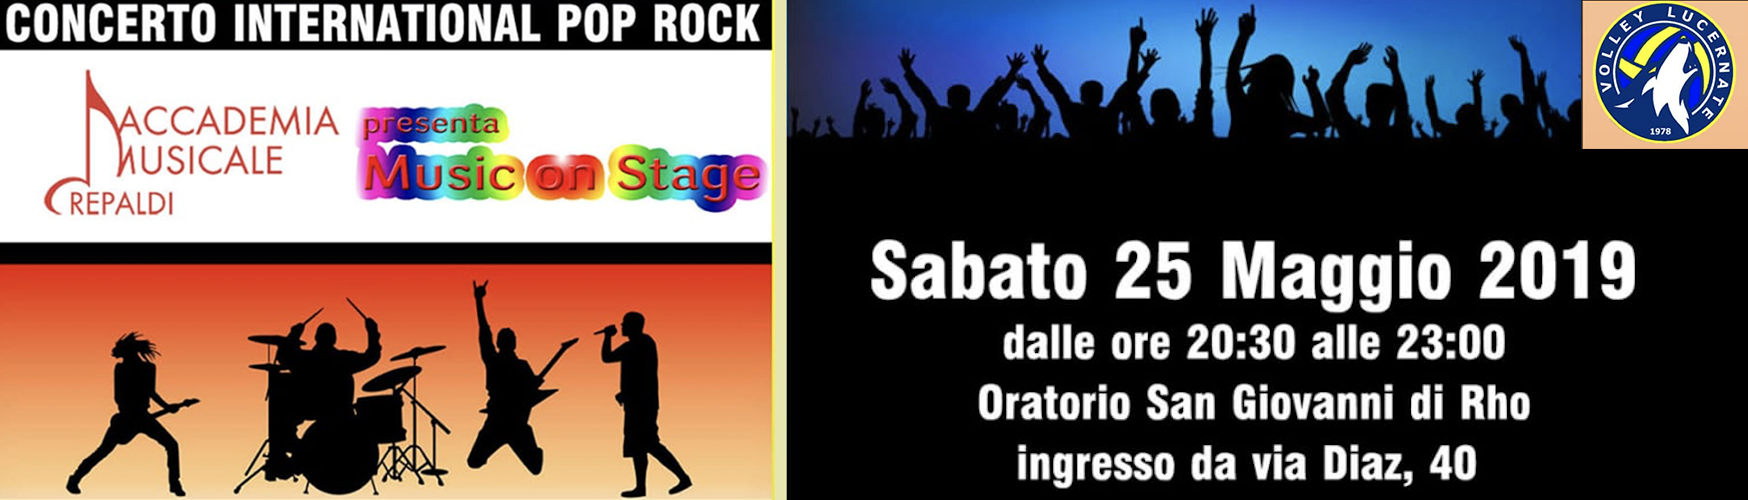 Accademia Musicale Crepaldi - Music on Stage per Volley Lucernate